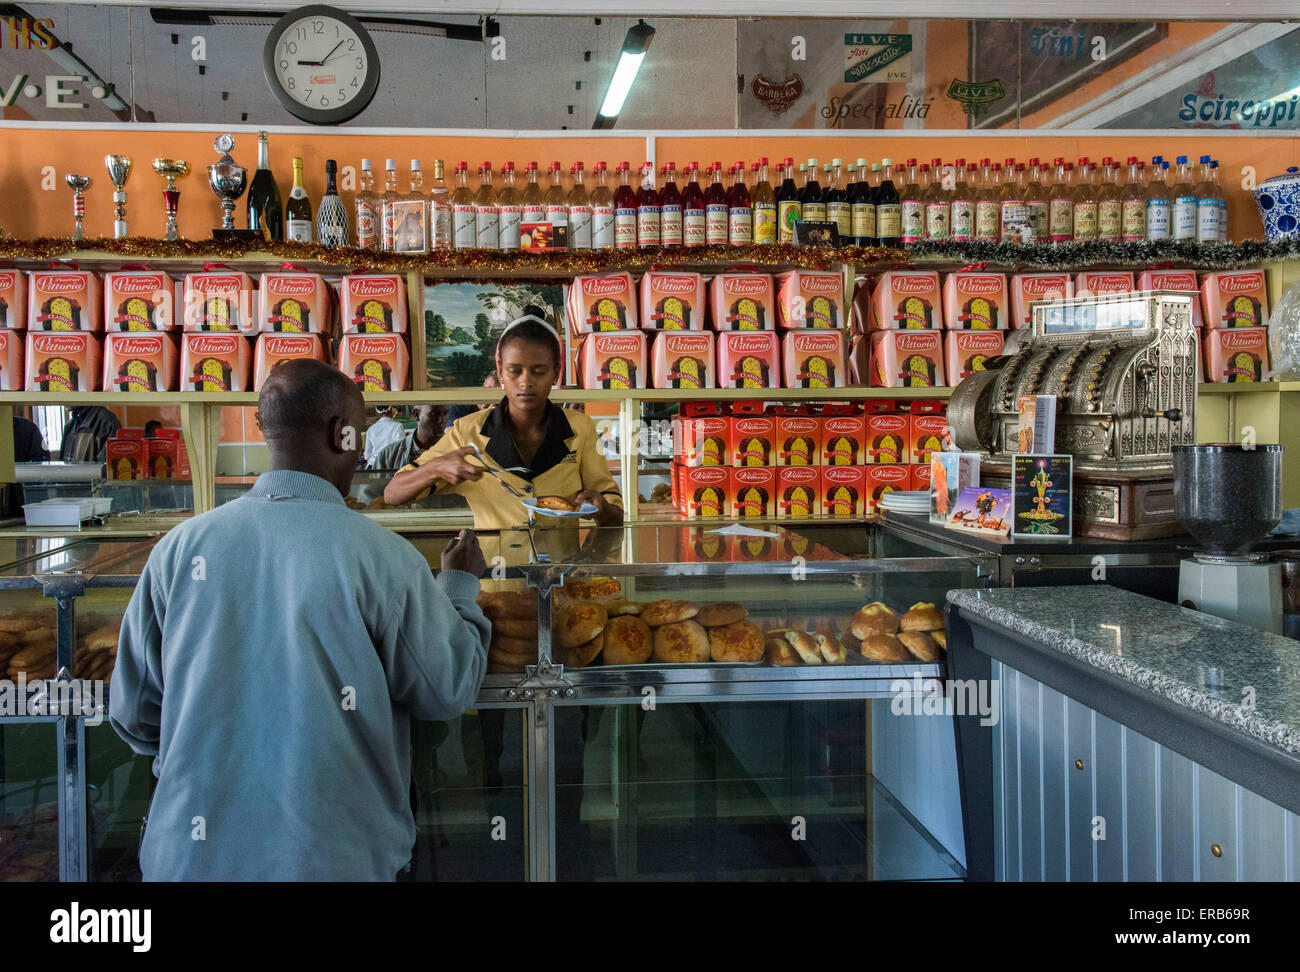 Man Buying Pastries For Brekfast In A Café, Asmara - Stock Image